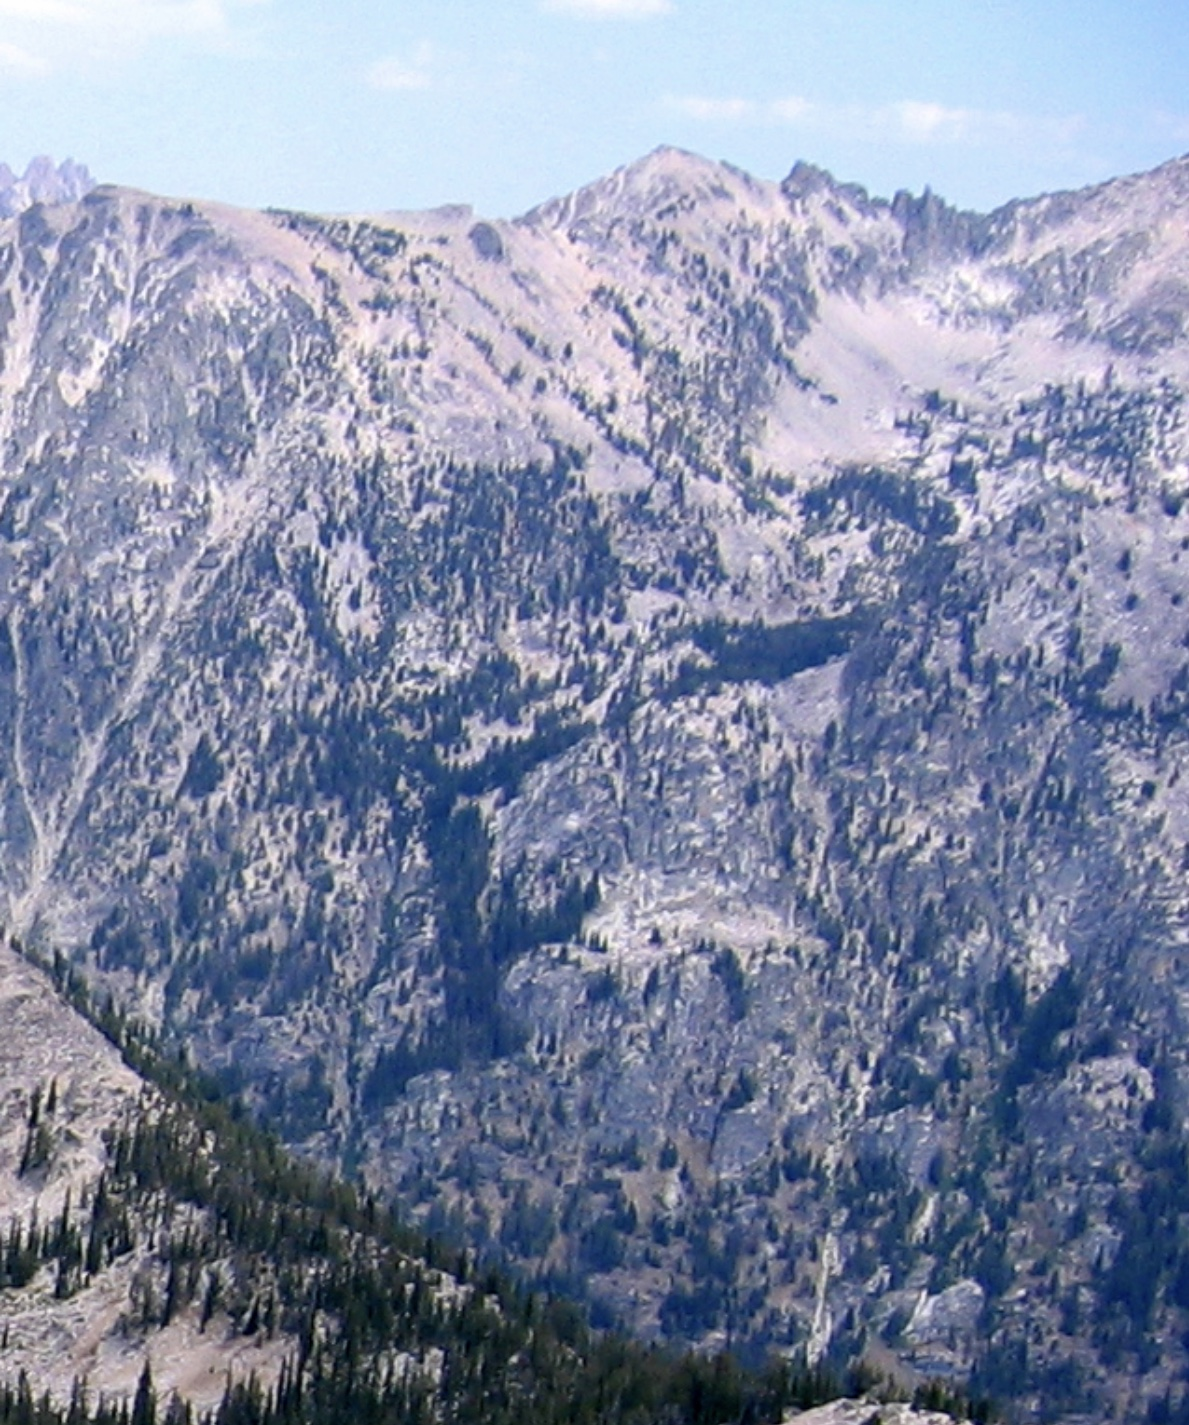 Reward Peak at top center, from near the North Raker.   Fred & Pete went 3,400 vertical feet up and down the appropriately named Drop Creek drainage, below Reward Peak. Ray Brooks Photo